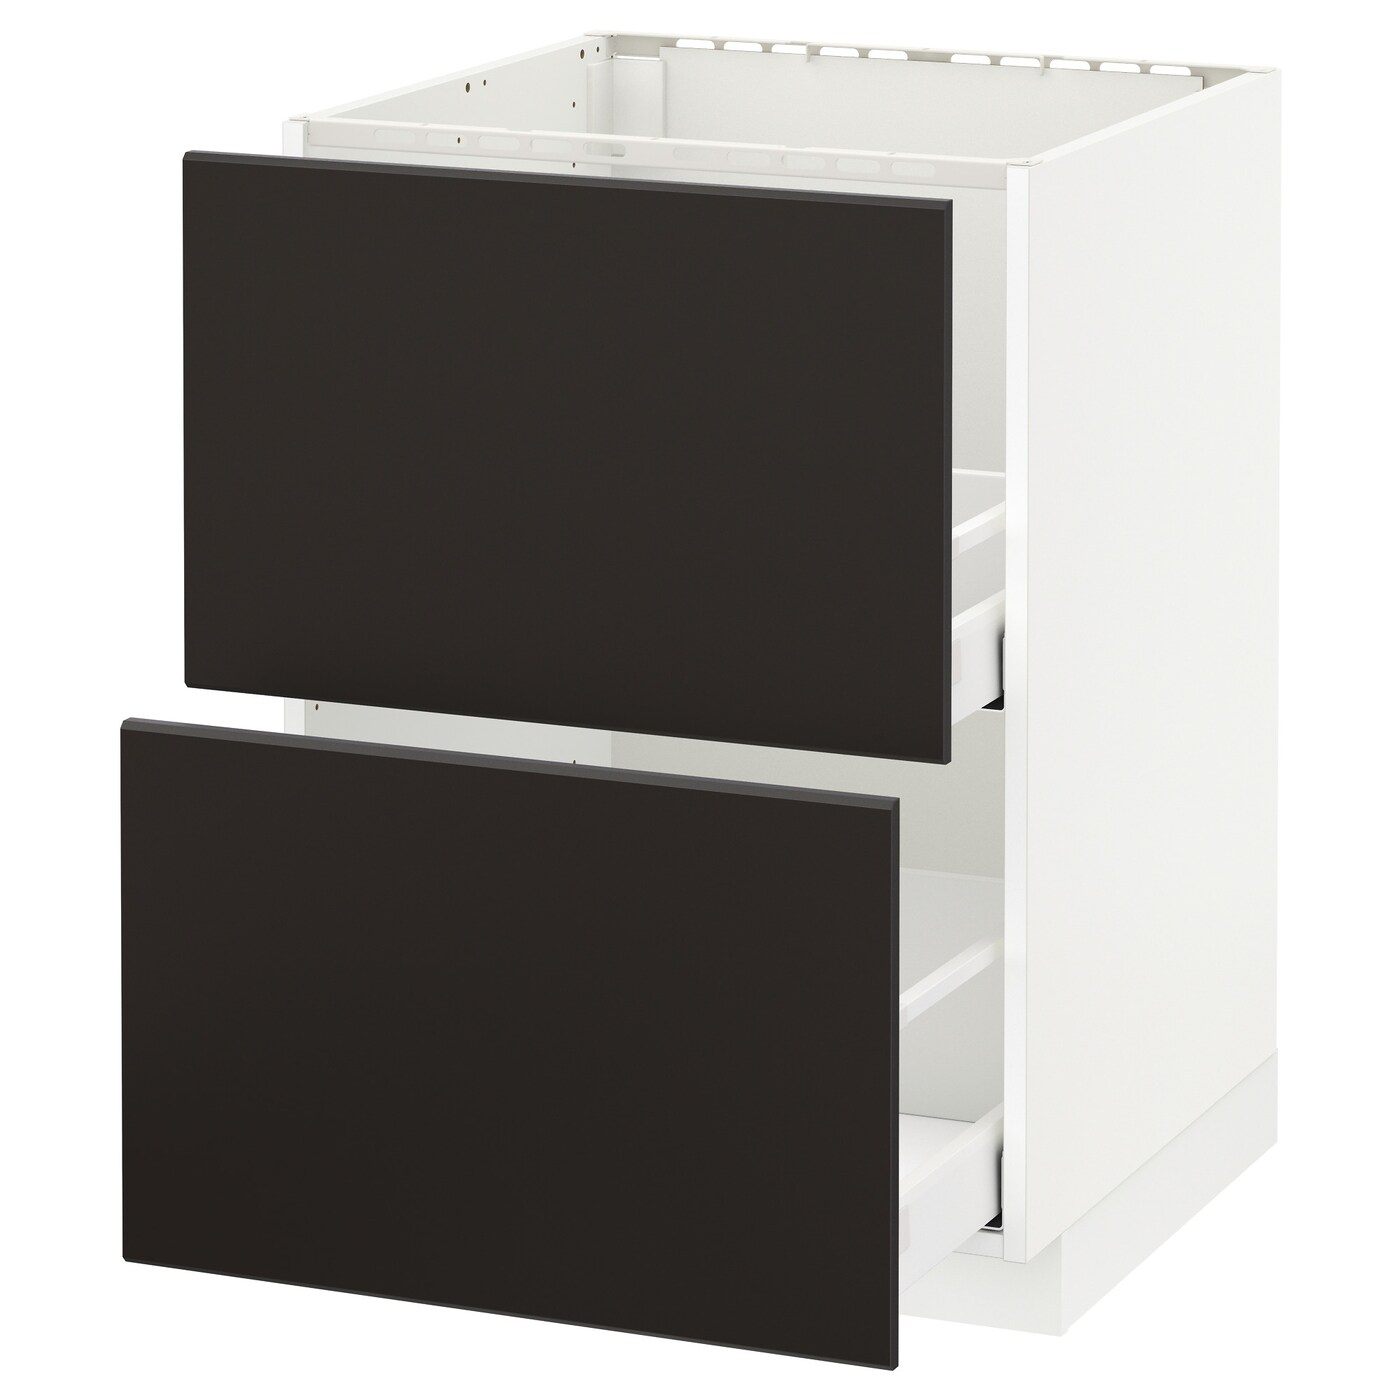 Cucina Ikea Metod Kungsbacka Metod Maximera Base Cab F Sink 2 Fronts 2 Drawers White Kungsbacka Anthracite 60 X 60 Cm Ikea